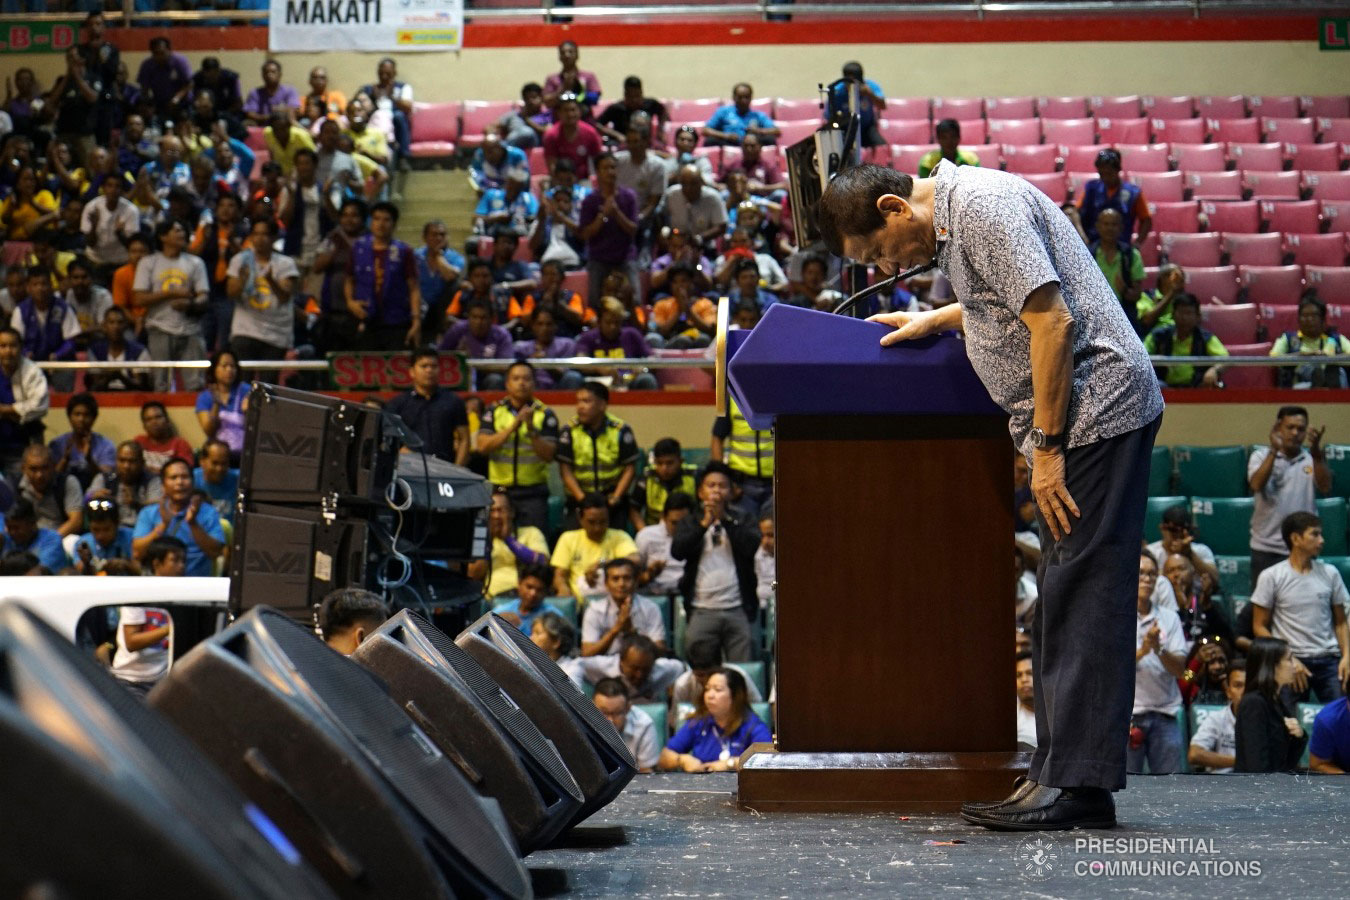 President Rodrigo Roa Duterte bows before the attendees of the Tricycle Operators and Drivers' Association (TODA) Summit at the Cuneta Astrodome in Pasay City on January 23, 2019. KING RODRIGUEZ/PRESIDENTIAL PHOTO